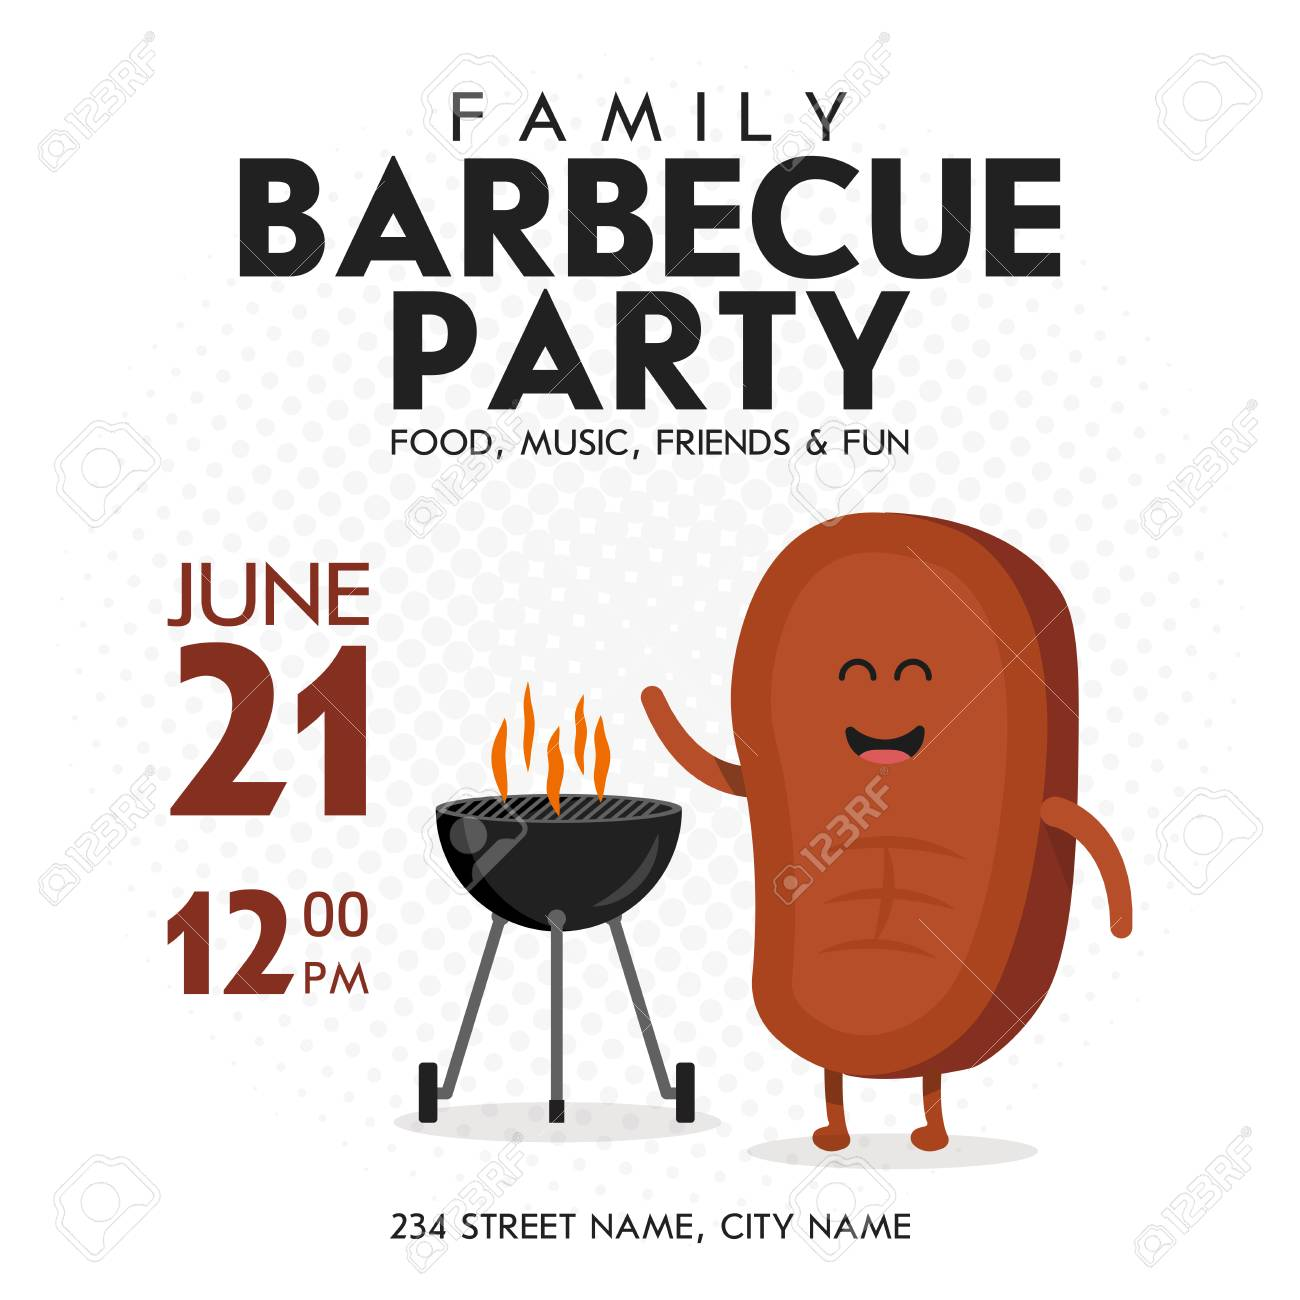 Family BBQ Party Invitation Template. Cute Steak Character Barbecue ...